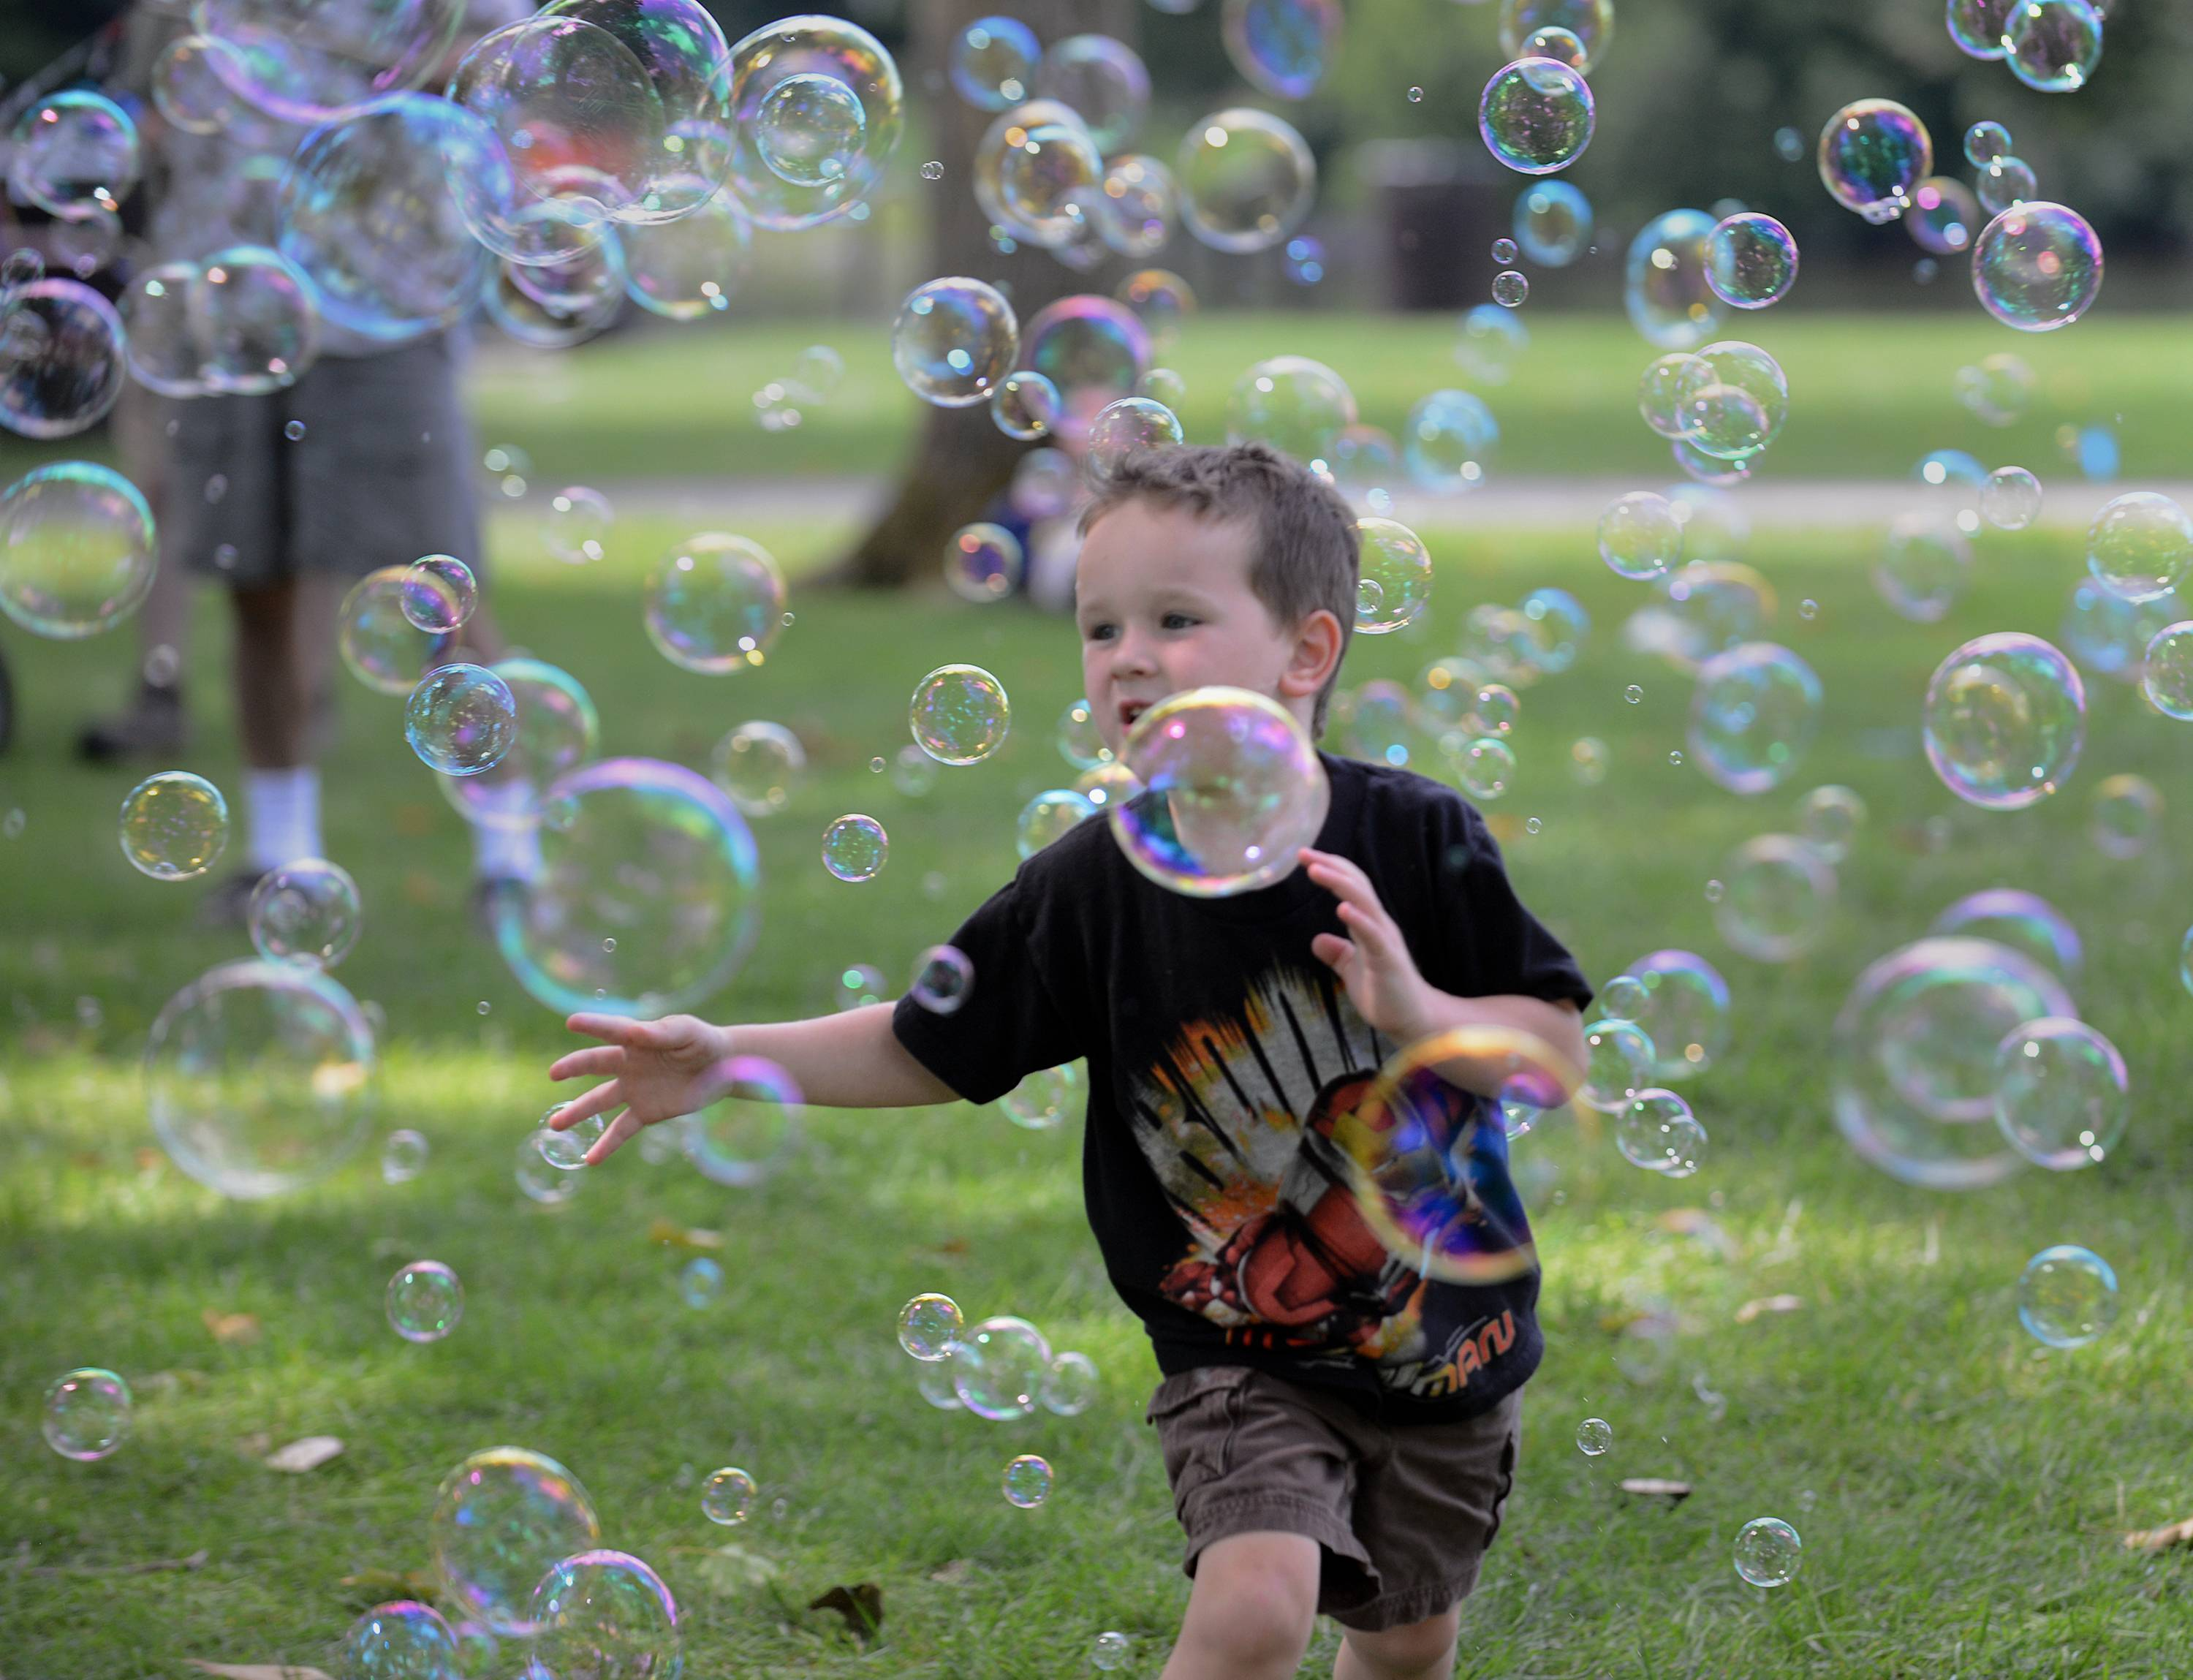 Caleb Talley, 4, of Crystal Lake chases bubbles Monday afternoon at the Fox Valley Folk Festival in Geneva. Ben Jimenez of Evanston, in the background, provided the bubbles.